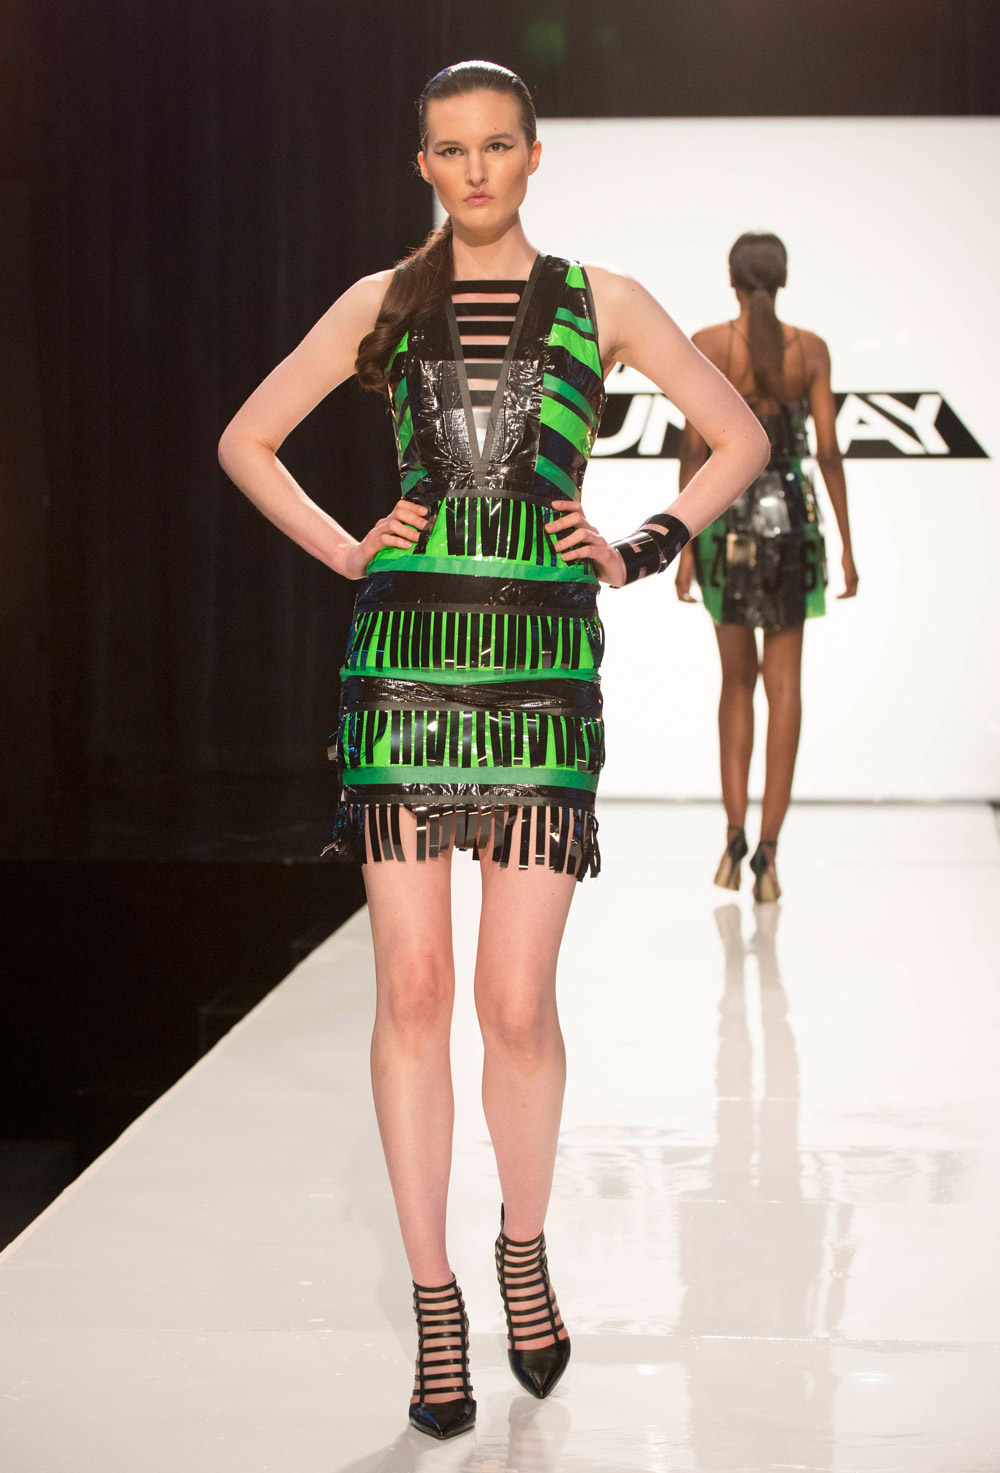 Puyallup Fashion Designer Survives 2nd Week On Project Runway